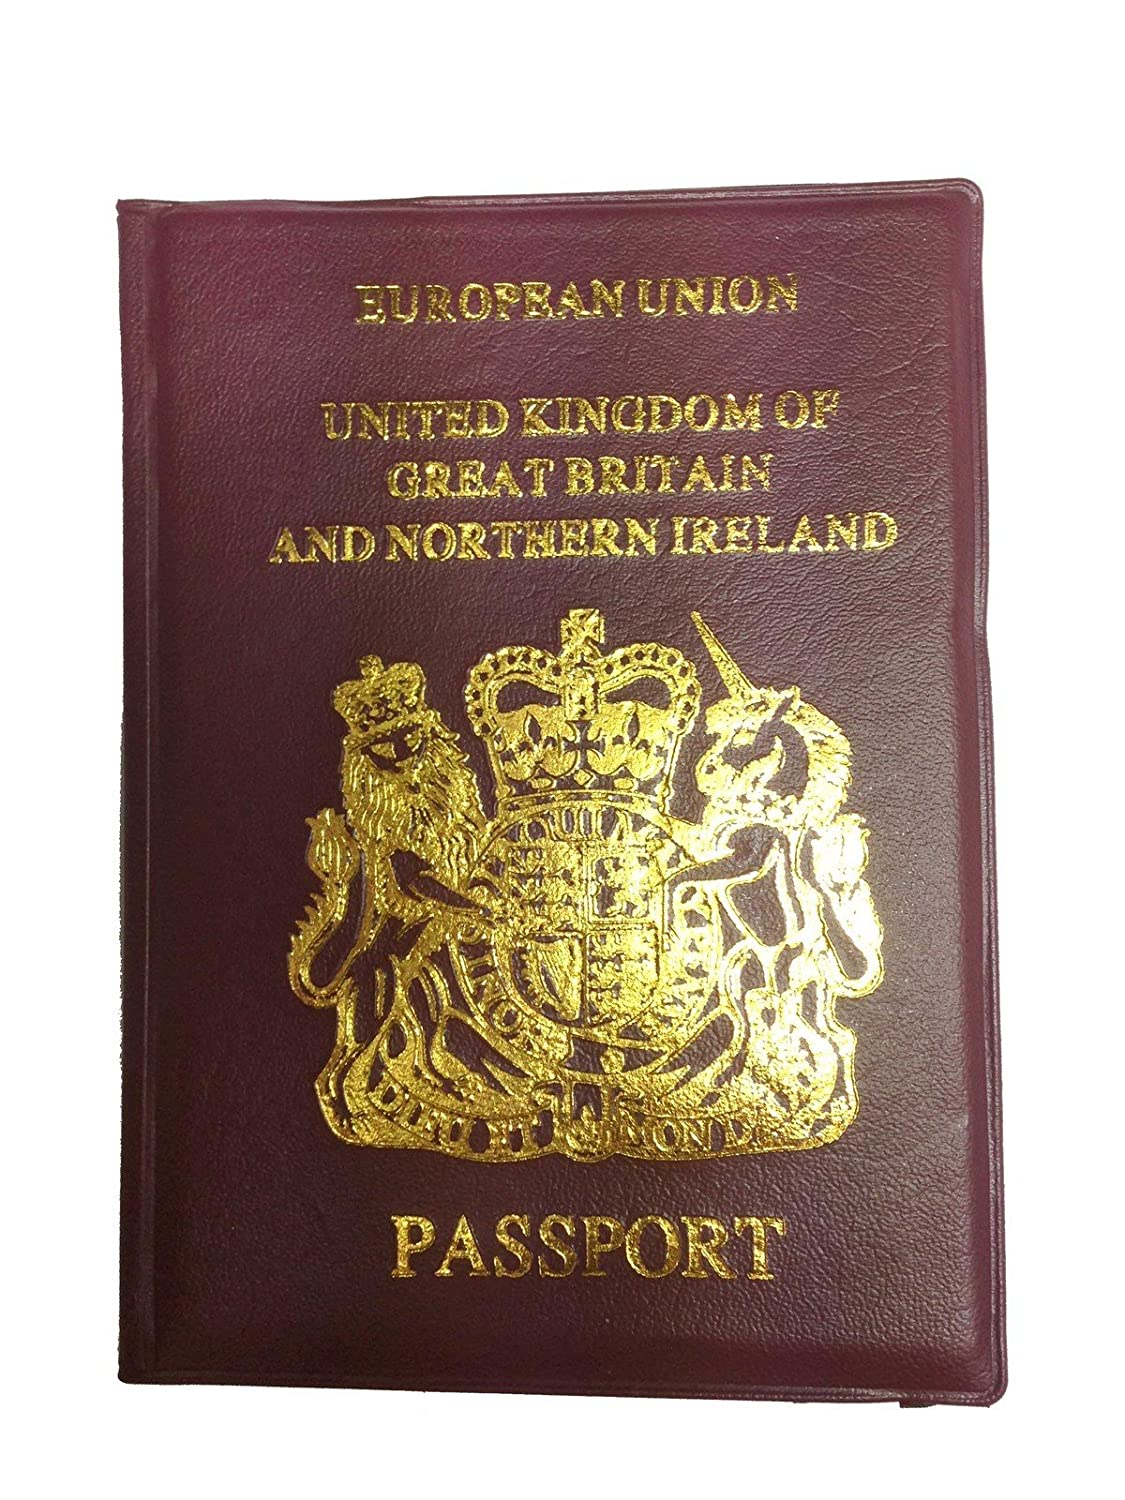 UK PU Leather Passport Holder EU Travel Document Protector Wallet Cover Case